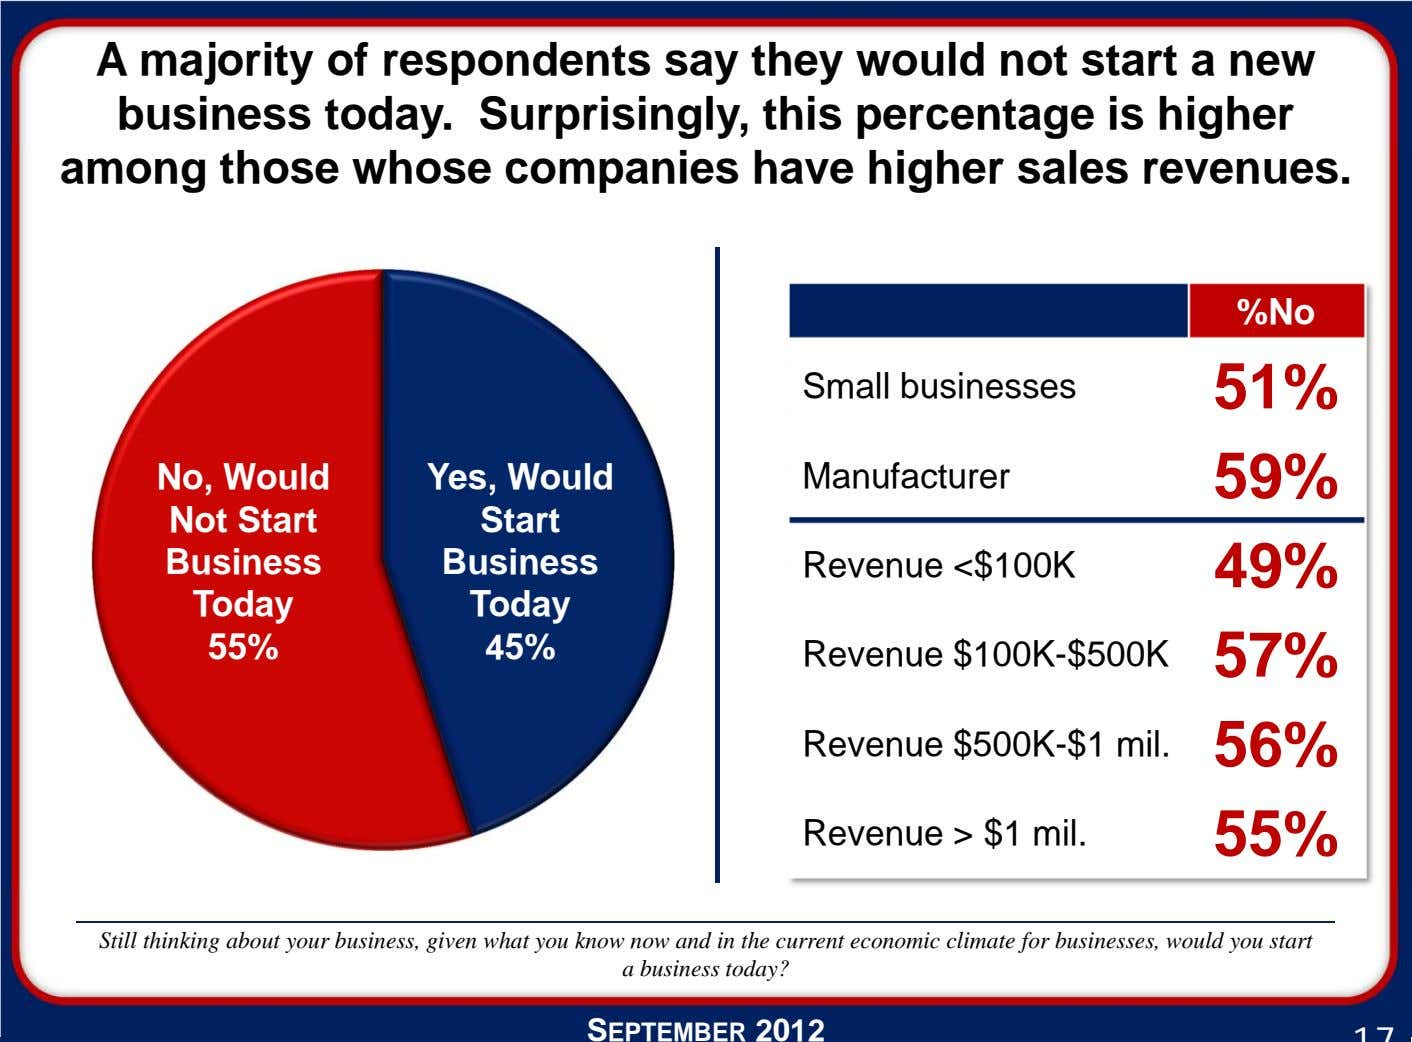 A majority of respondents say they would not start a new business today. Surprisingly, this